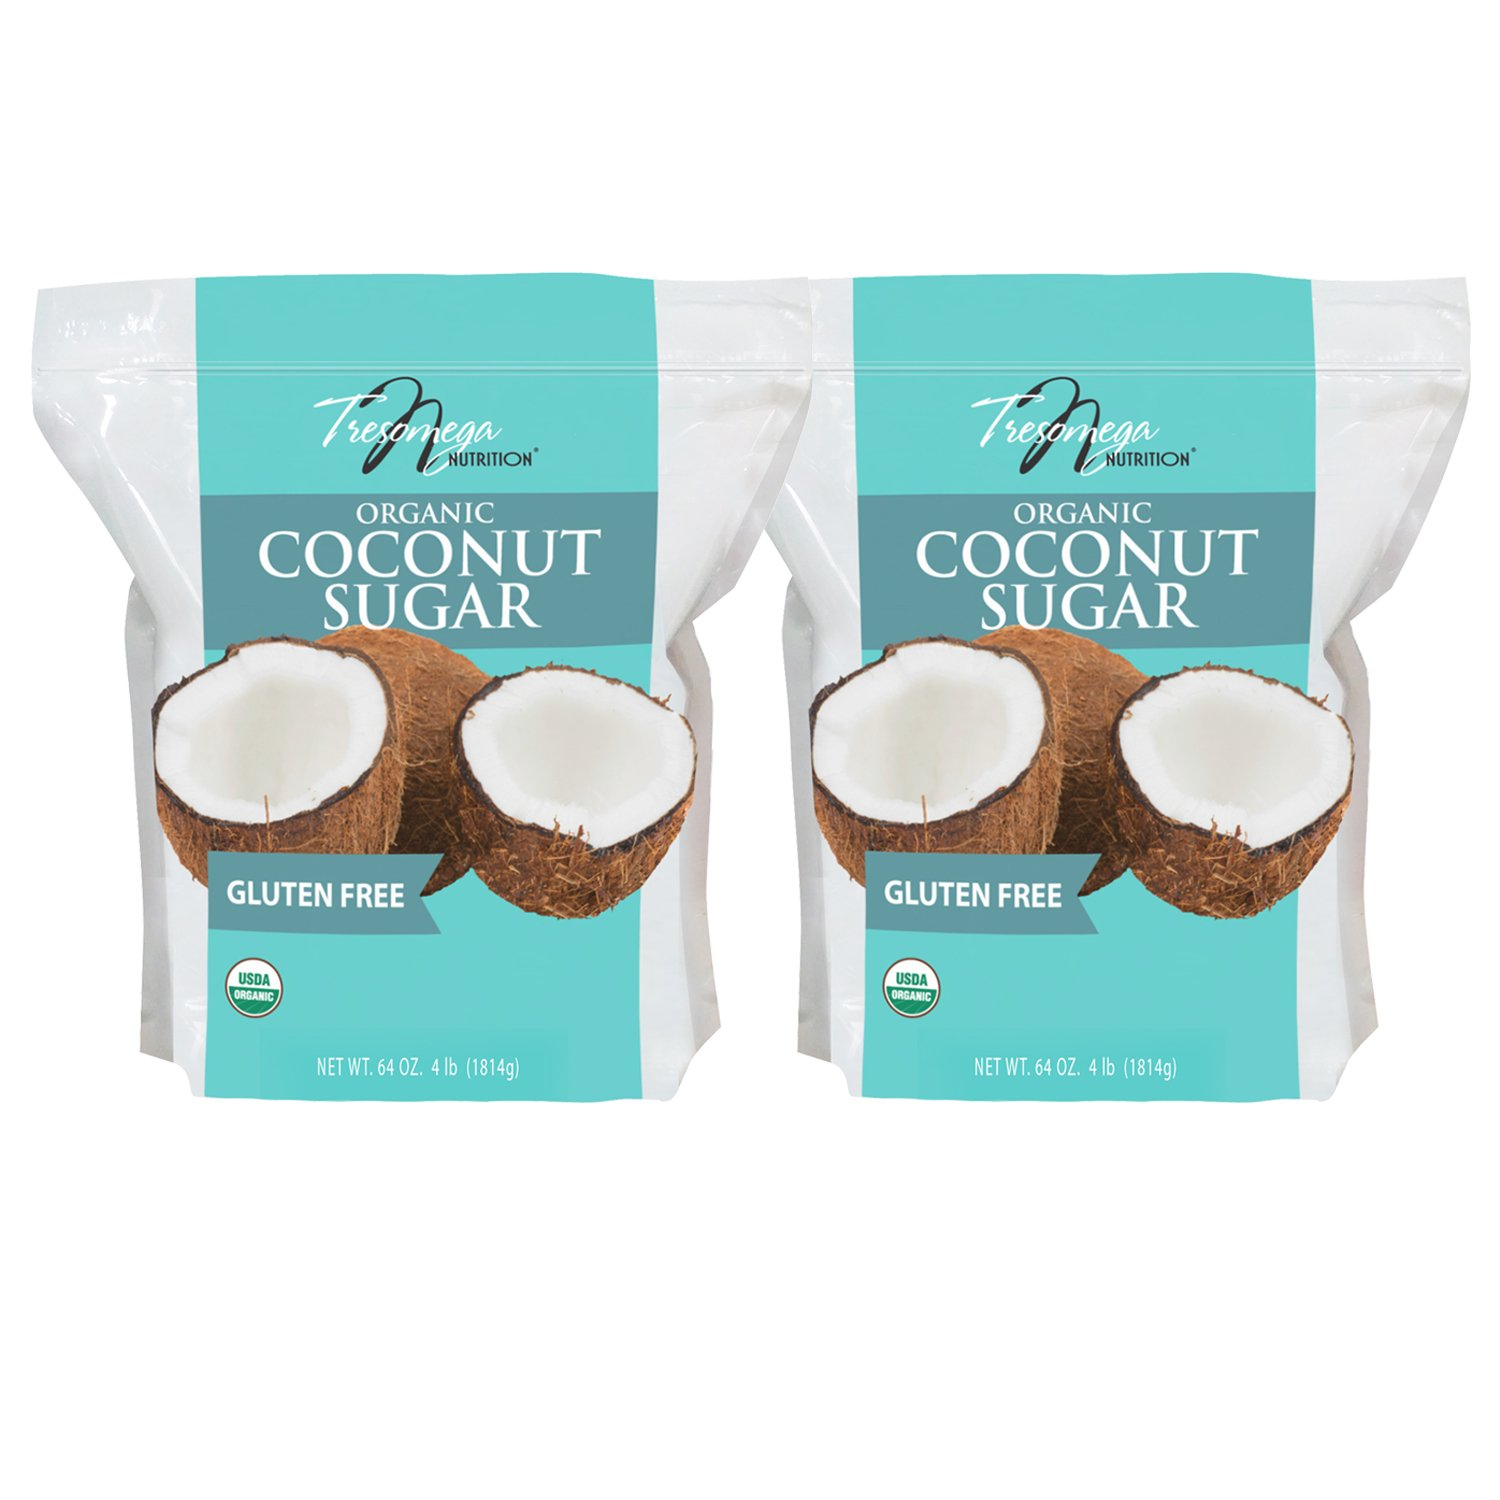 Tresomega Nutrition Organic Coconut Sugar, 4 Pound (Pack of 2)